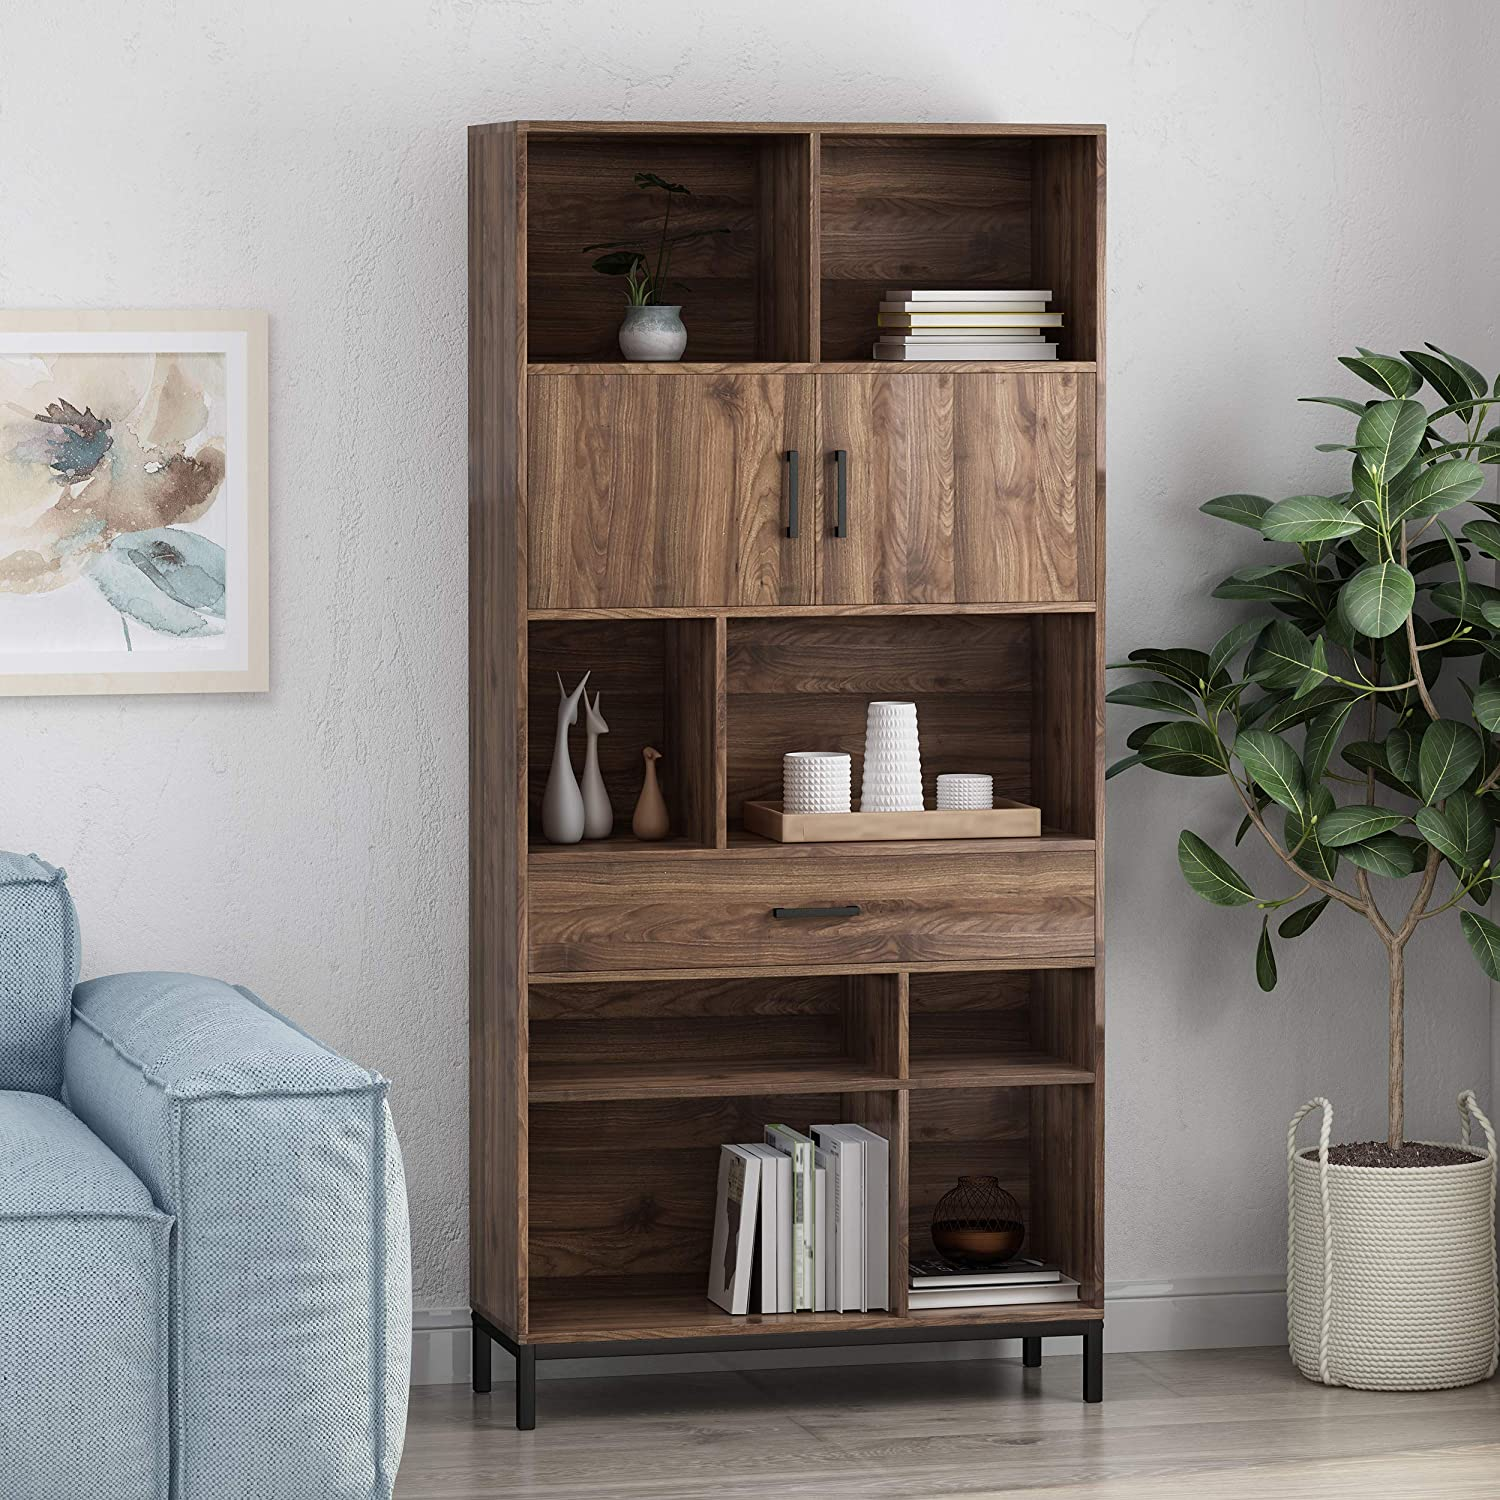 Great Deal Furniture Yvonne Contemporary Faux Wood Cube Unit Bookcase, Walnut and Black